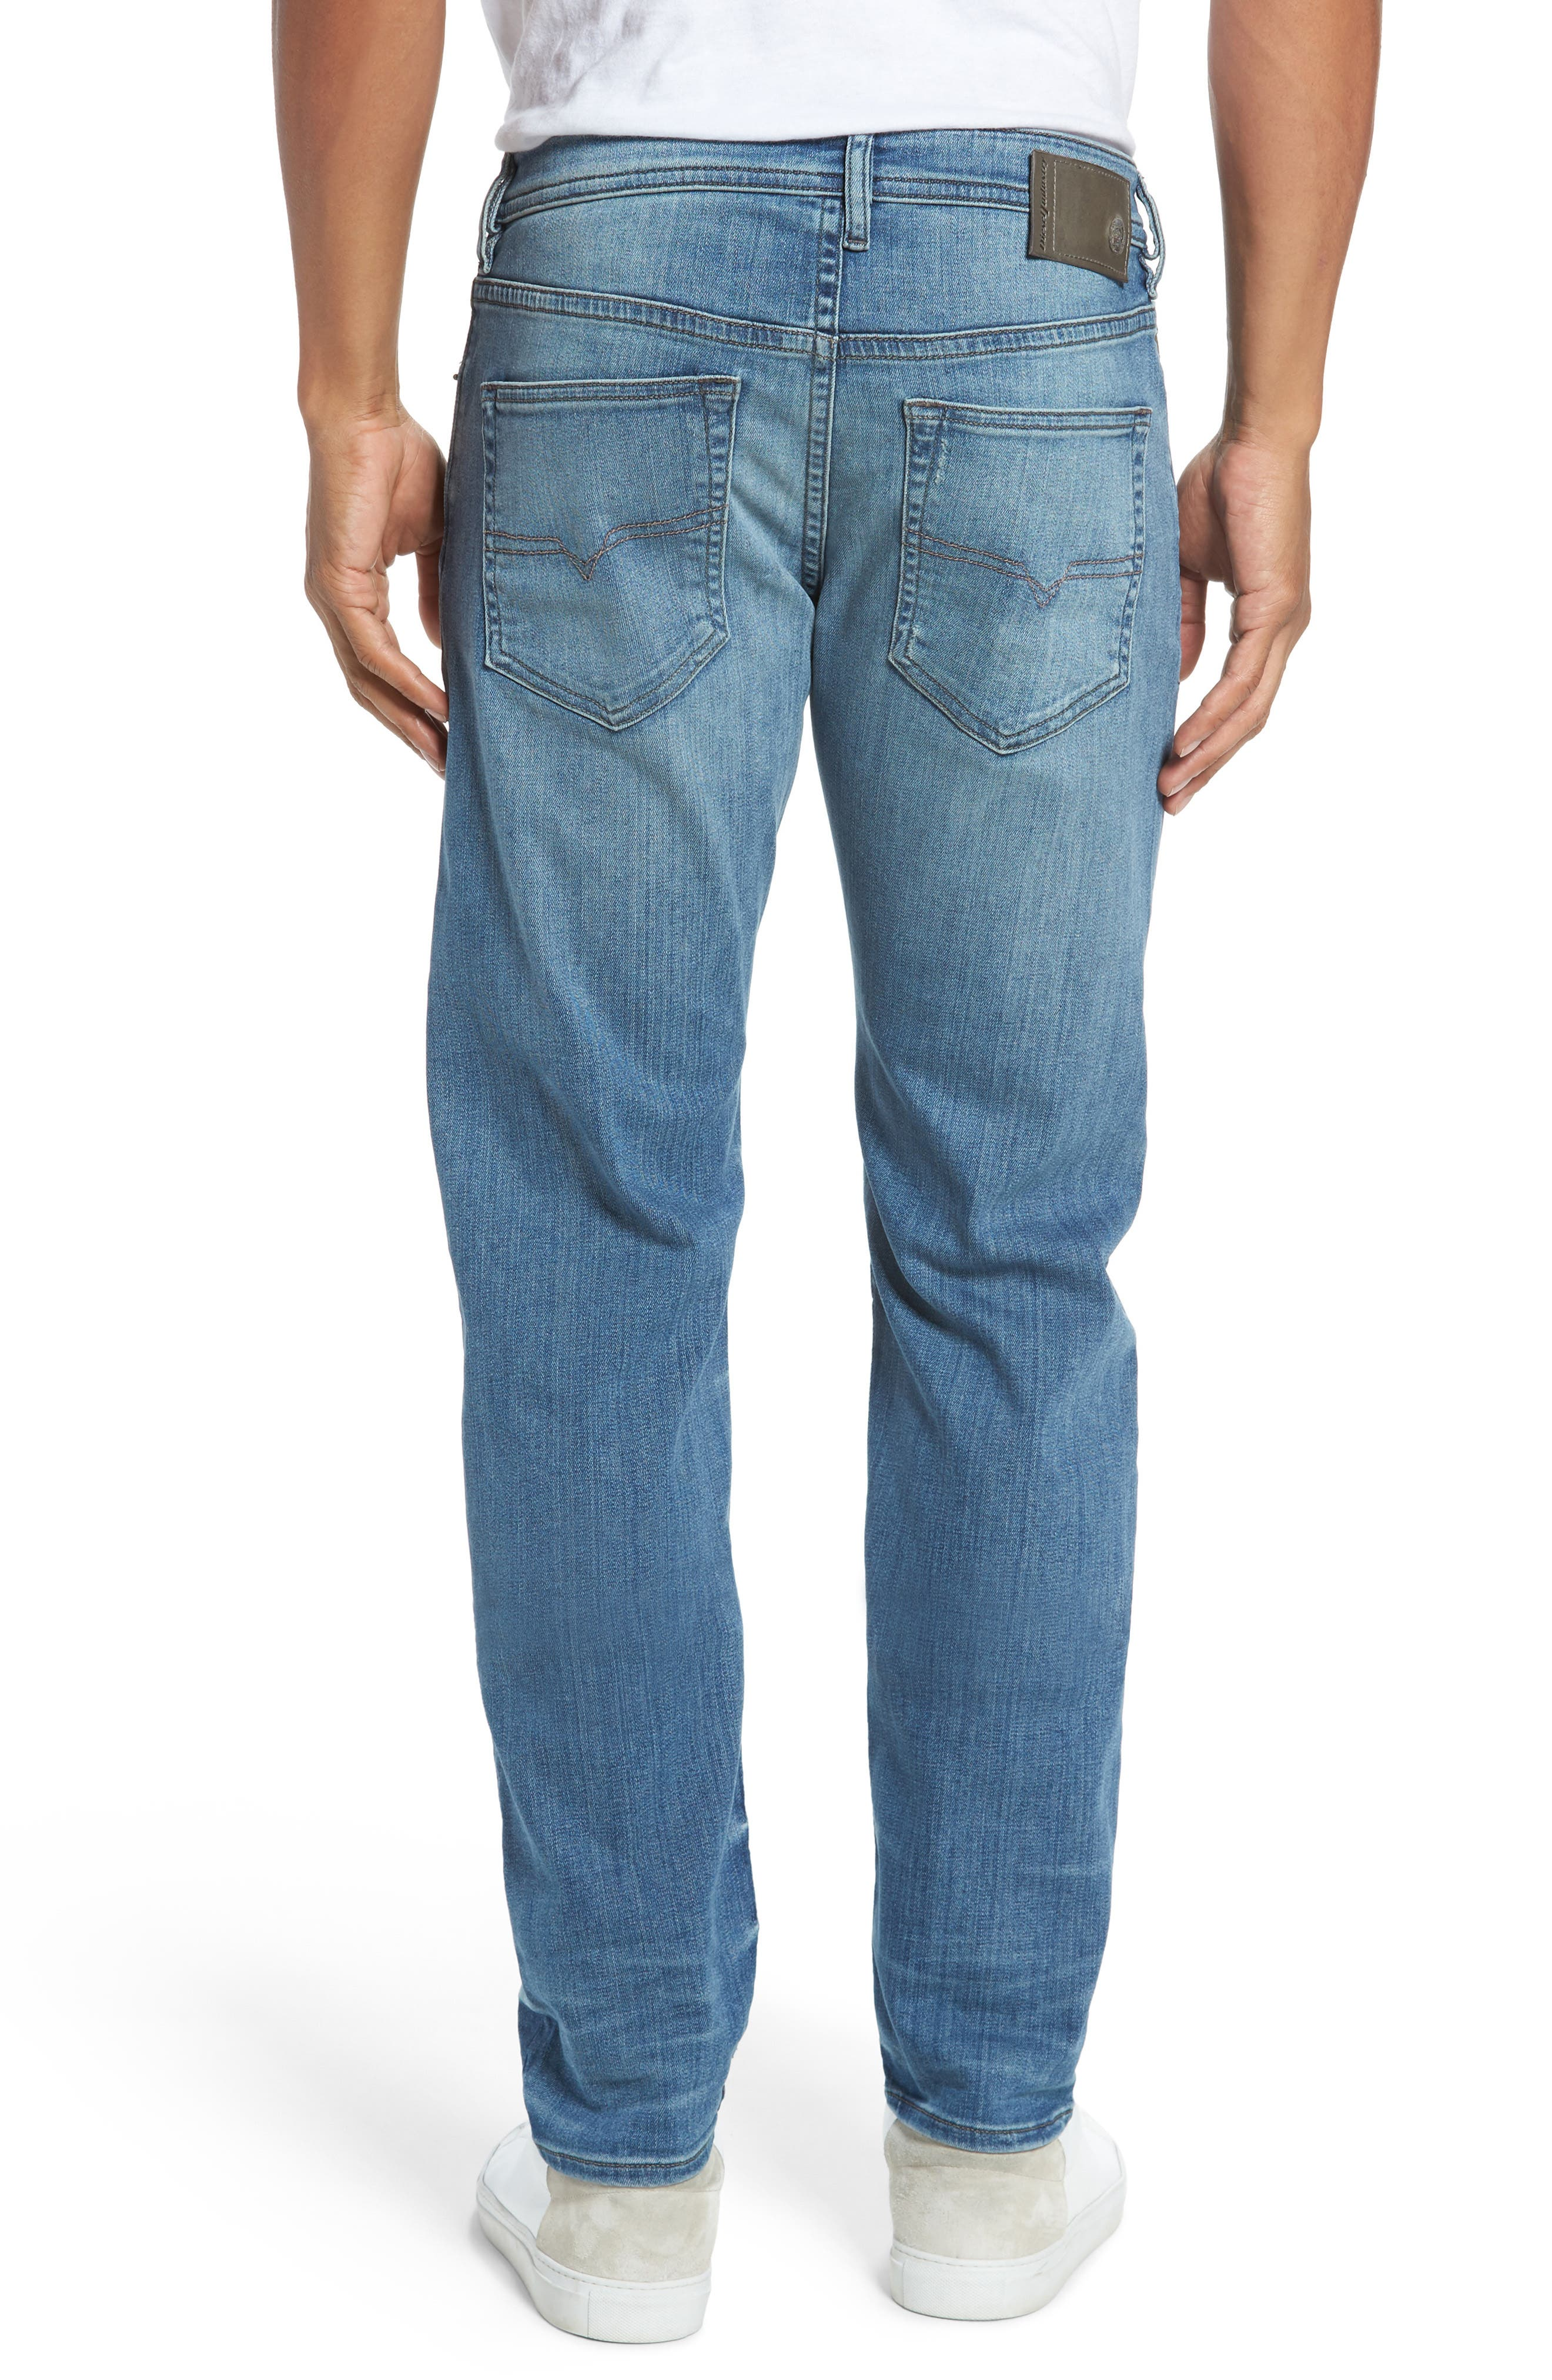 'Buster' Slim Straight Fit Jeans,                             Alternate thumbnail 3, color,                             400